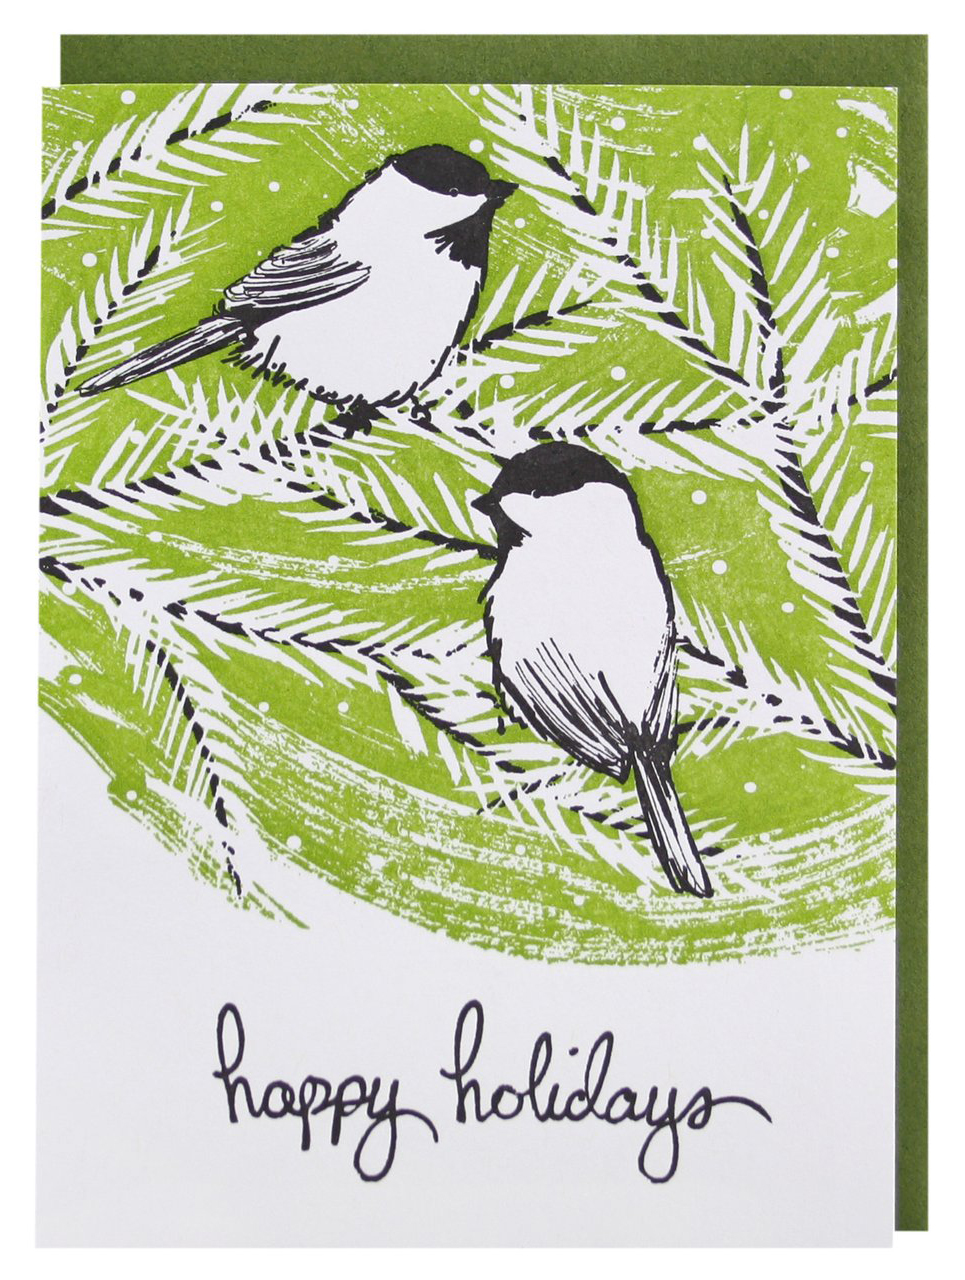 Chickadees-Holiday-Card_1280x1280.jpg